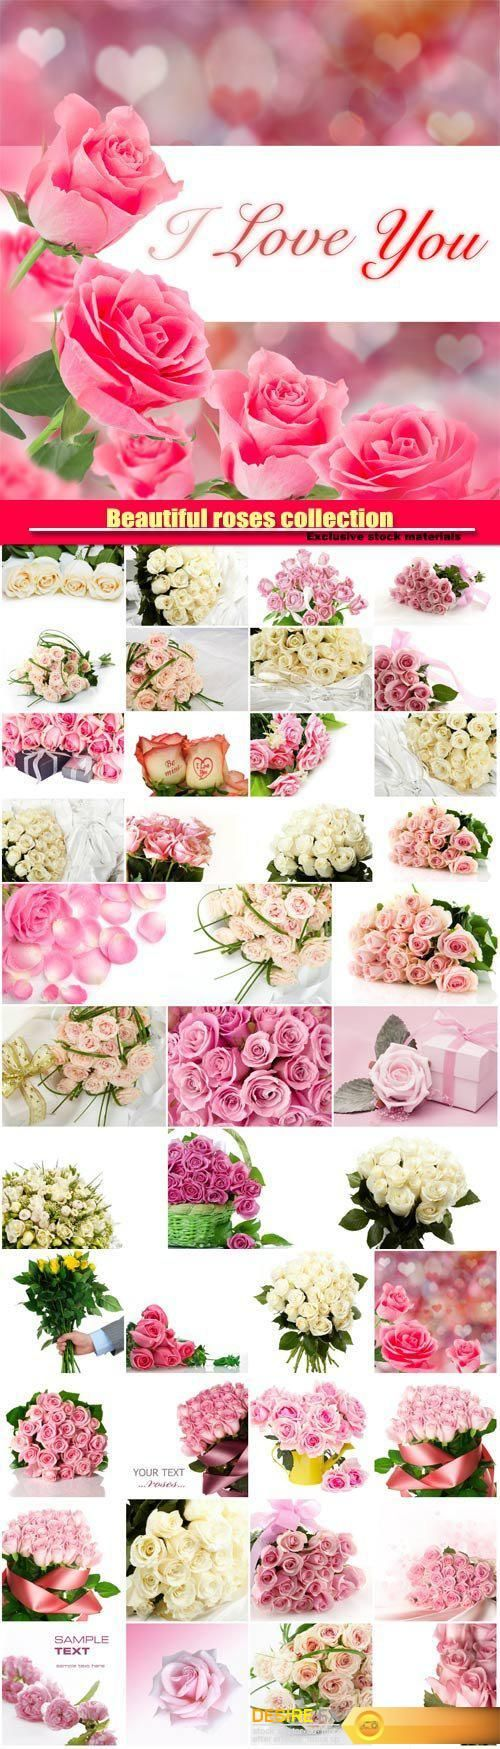 Beautiful pink and white roses, collection of romantic backgrounds  http://www.desirefx.me/beautiful-pink-and-white-roses-collection-of-romantic-backgrounds/